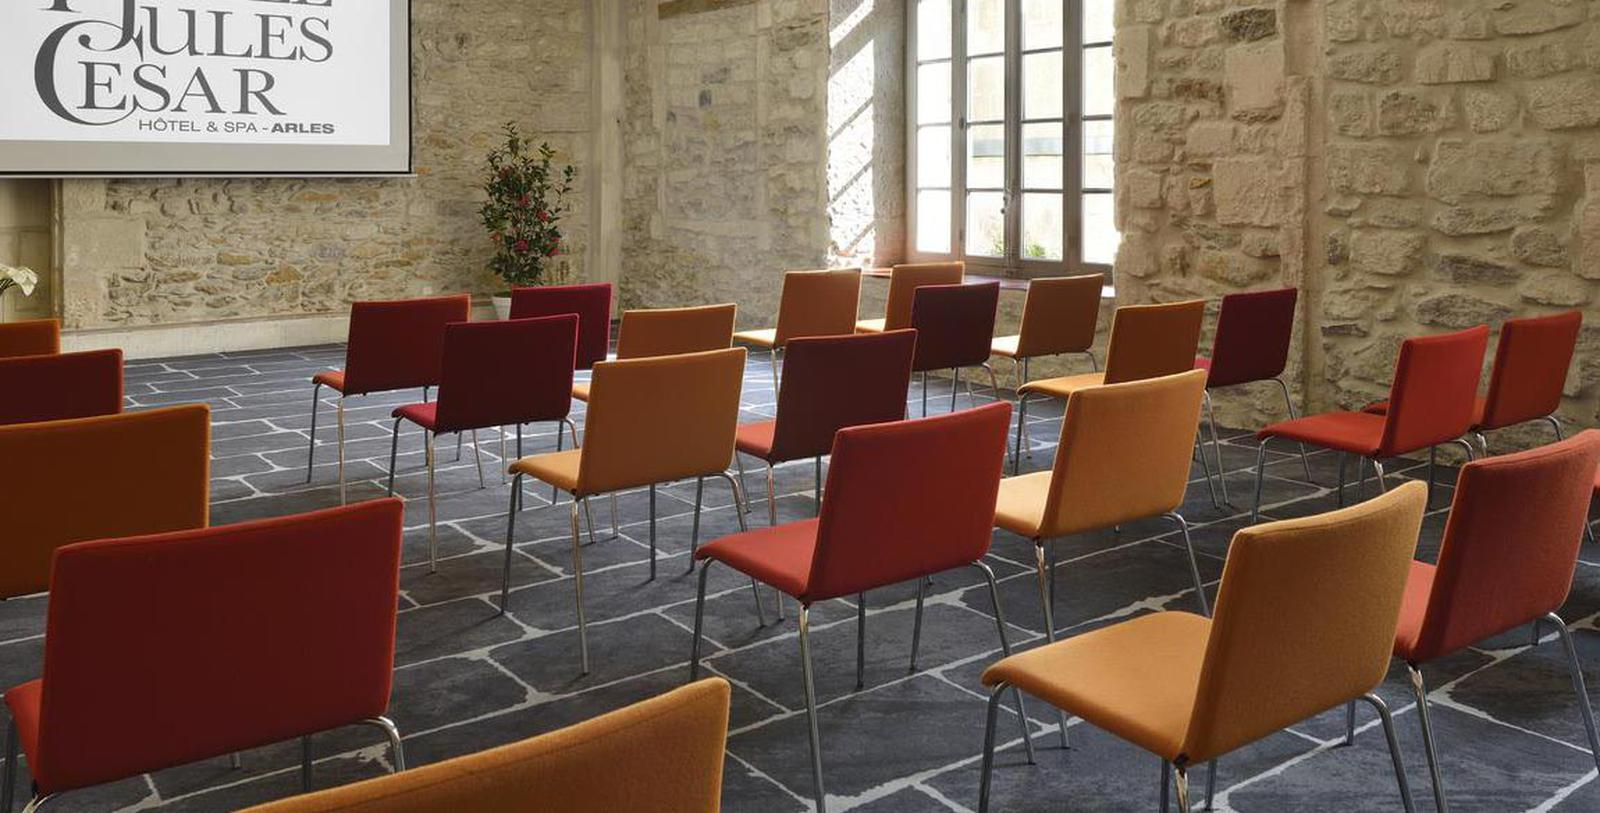 Image of Meeting Room Hôtel & Spa Jules César Arles – MGallery by Sofitel, 1661, Member of Historic Hotels Worldwide, in Arles, France, Special Occasions